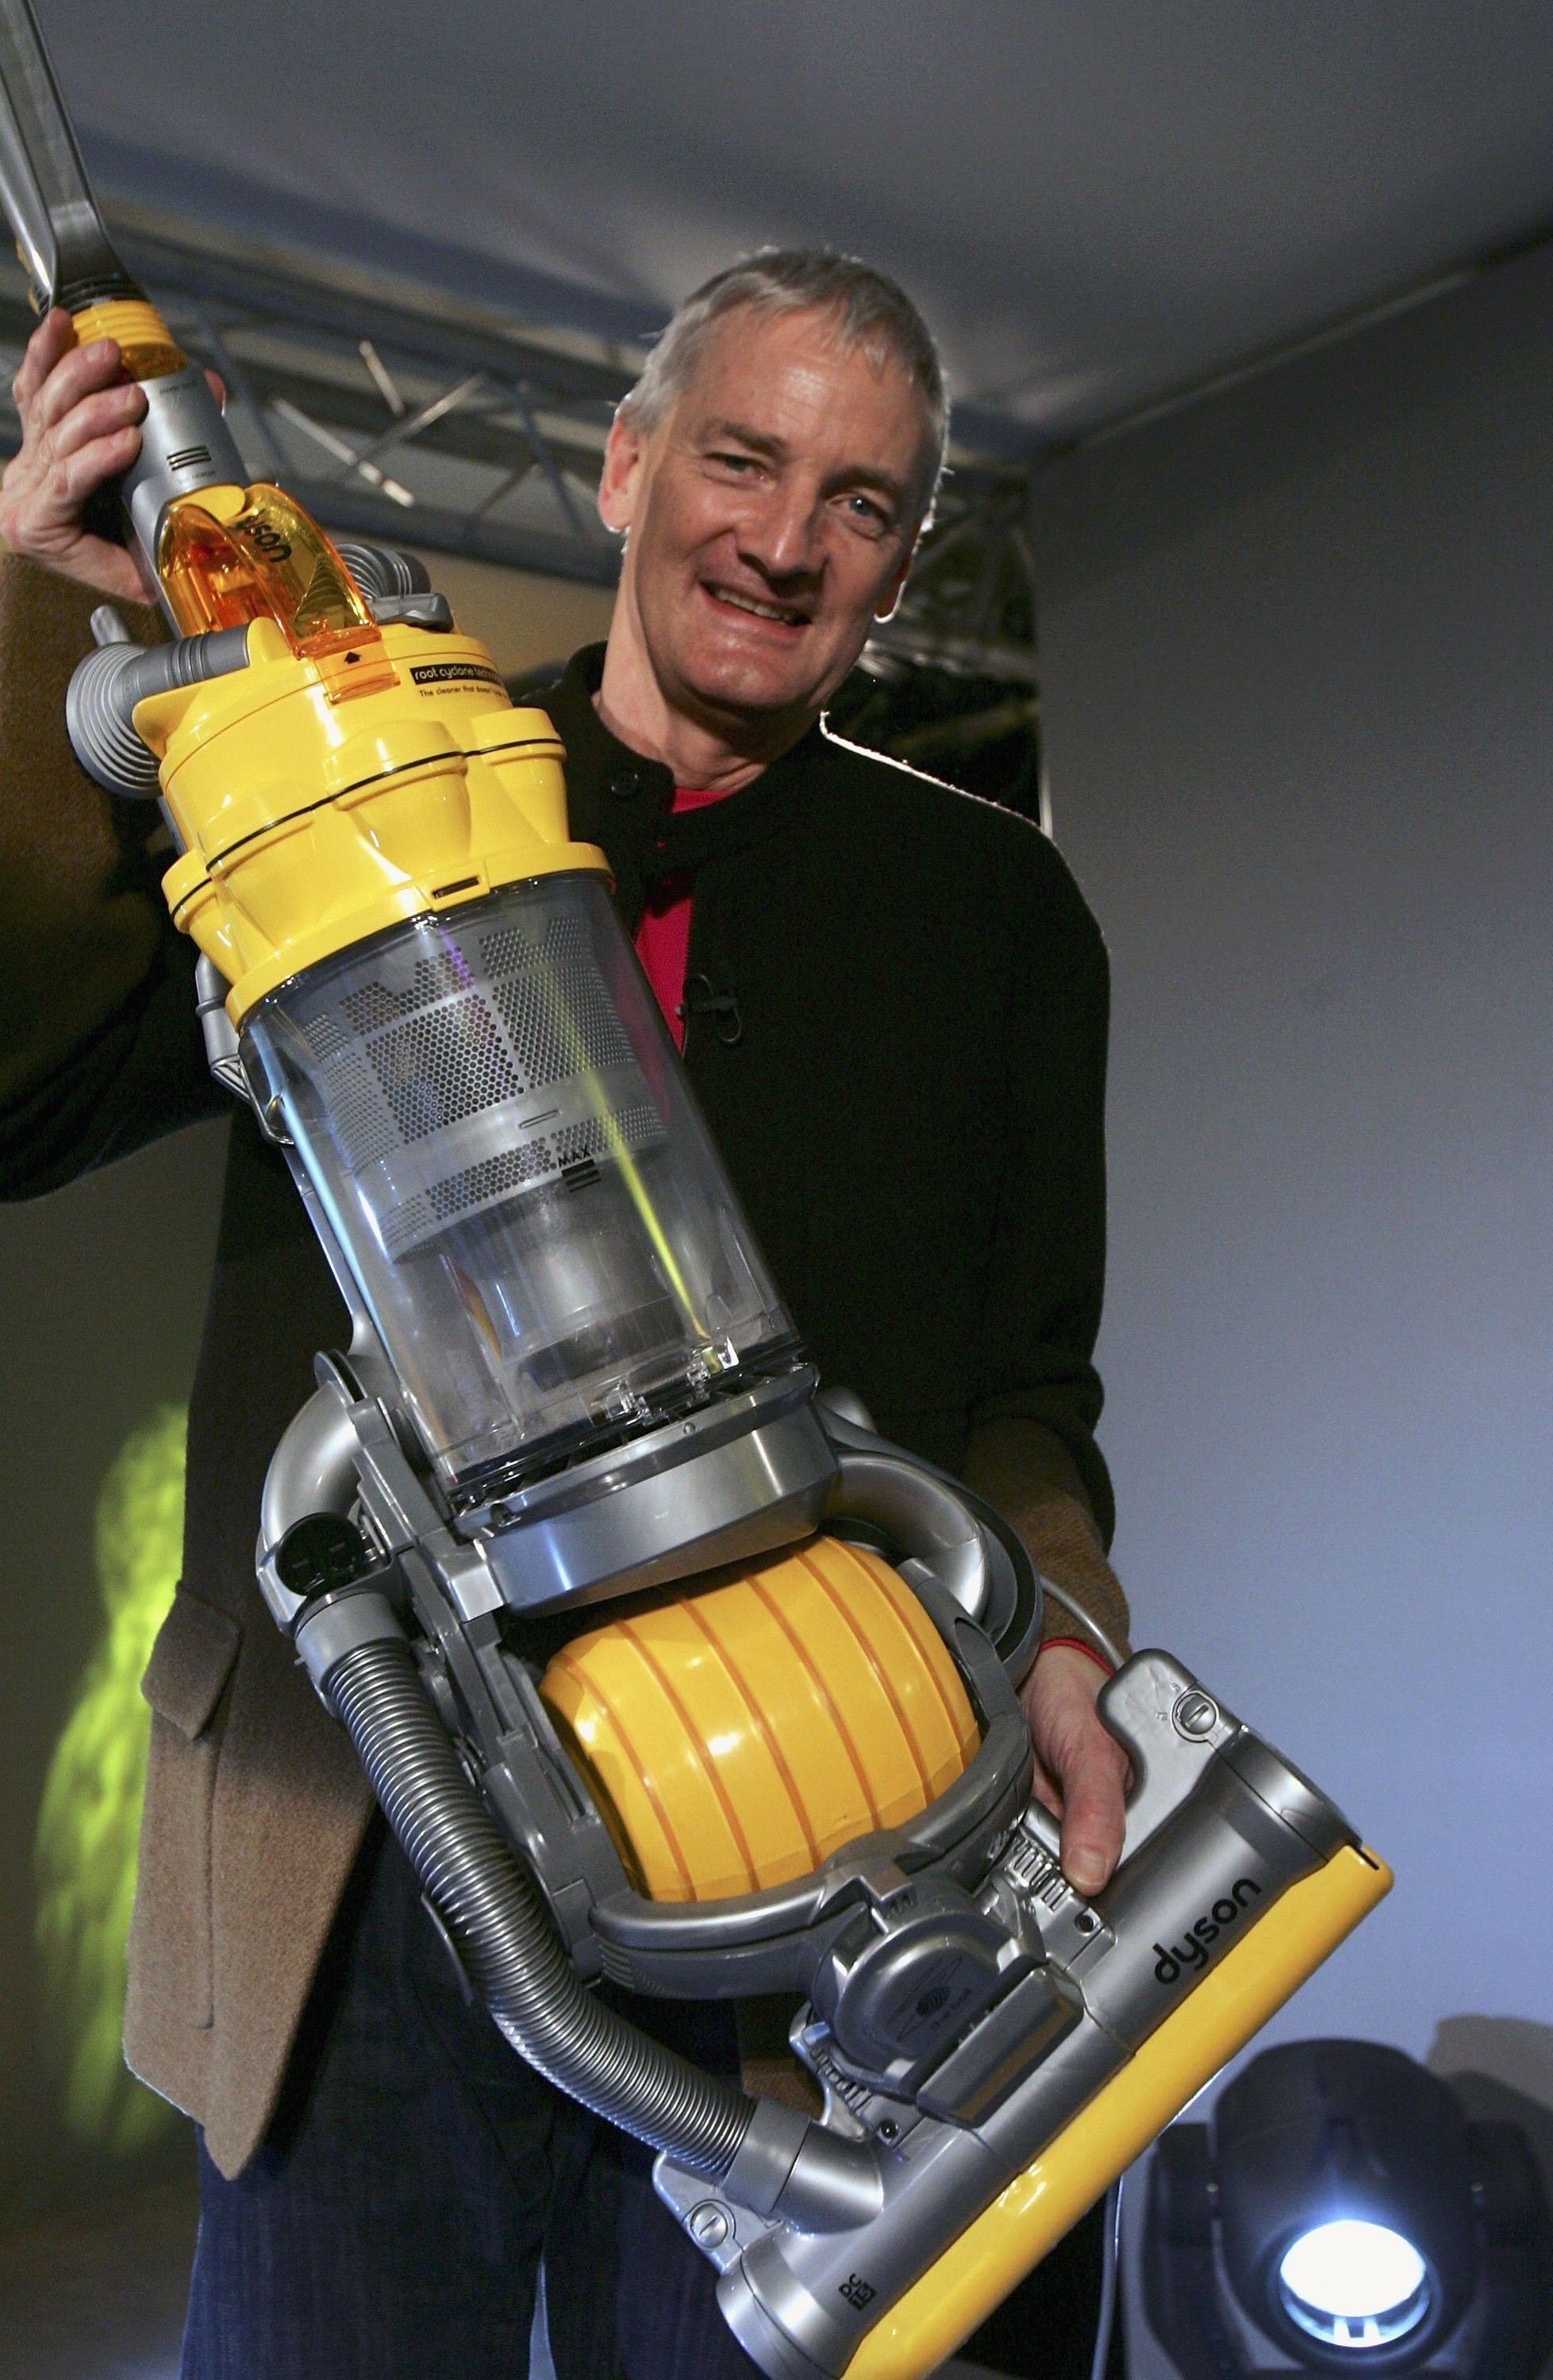 Inventor James Dyson is seen at the launch of his latest hoovering invention on March 14, 2005 in London| Photo: Getty Images